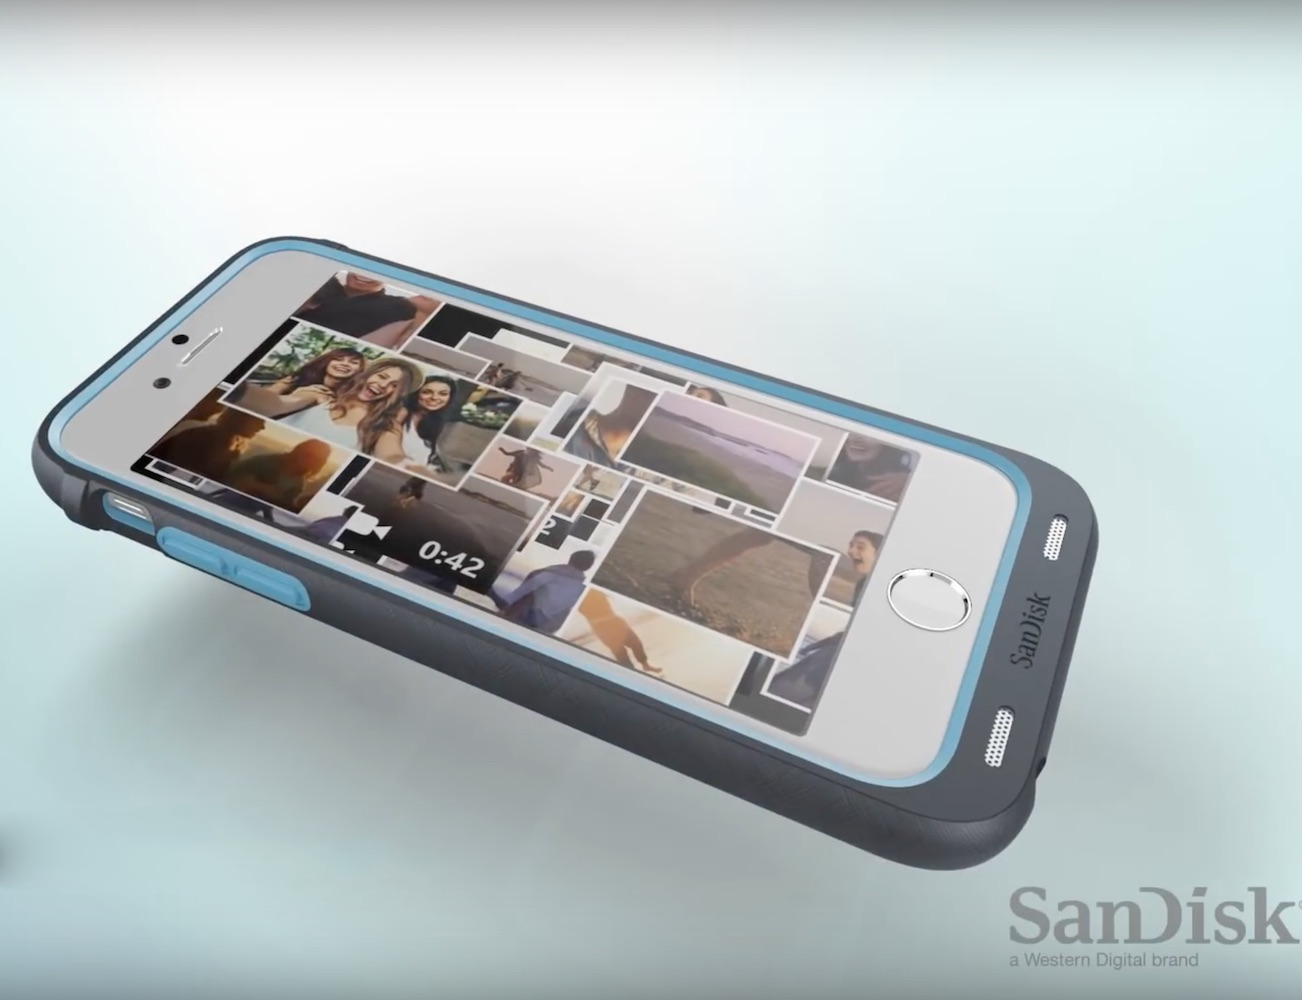 SanDisk iXpand Memory Case for iPhone